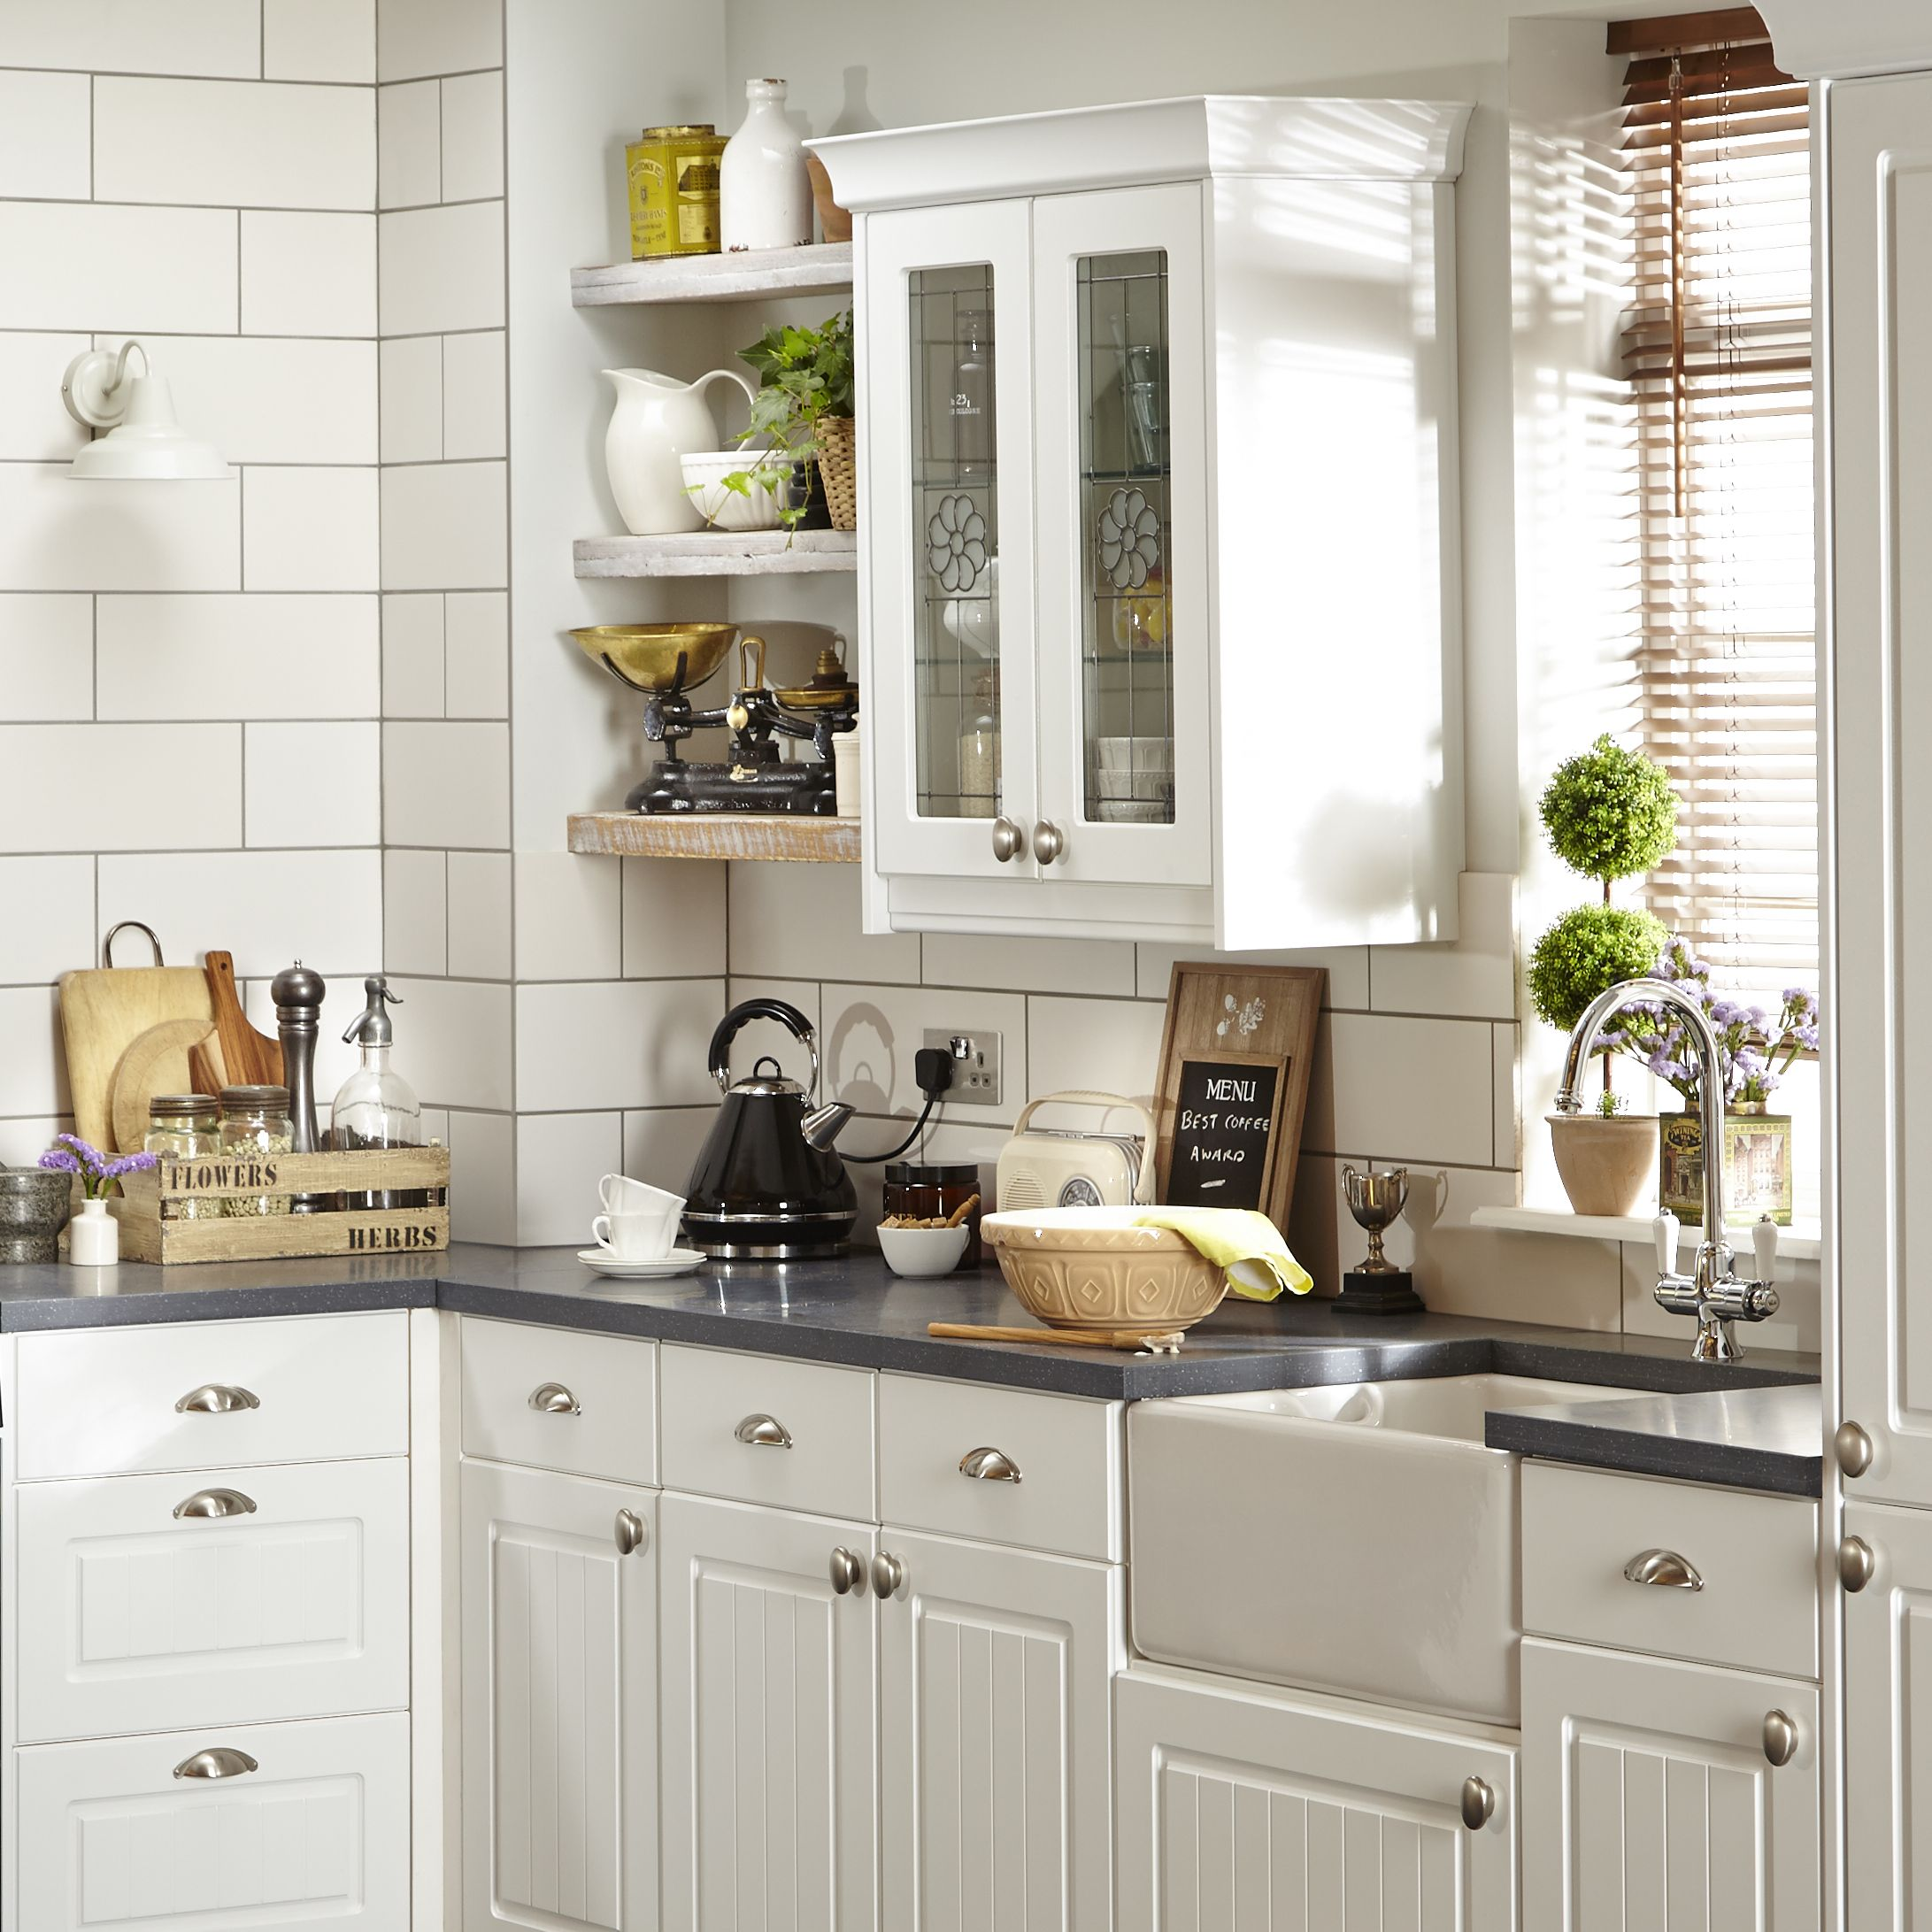 Expanded kitchen planning